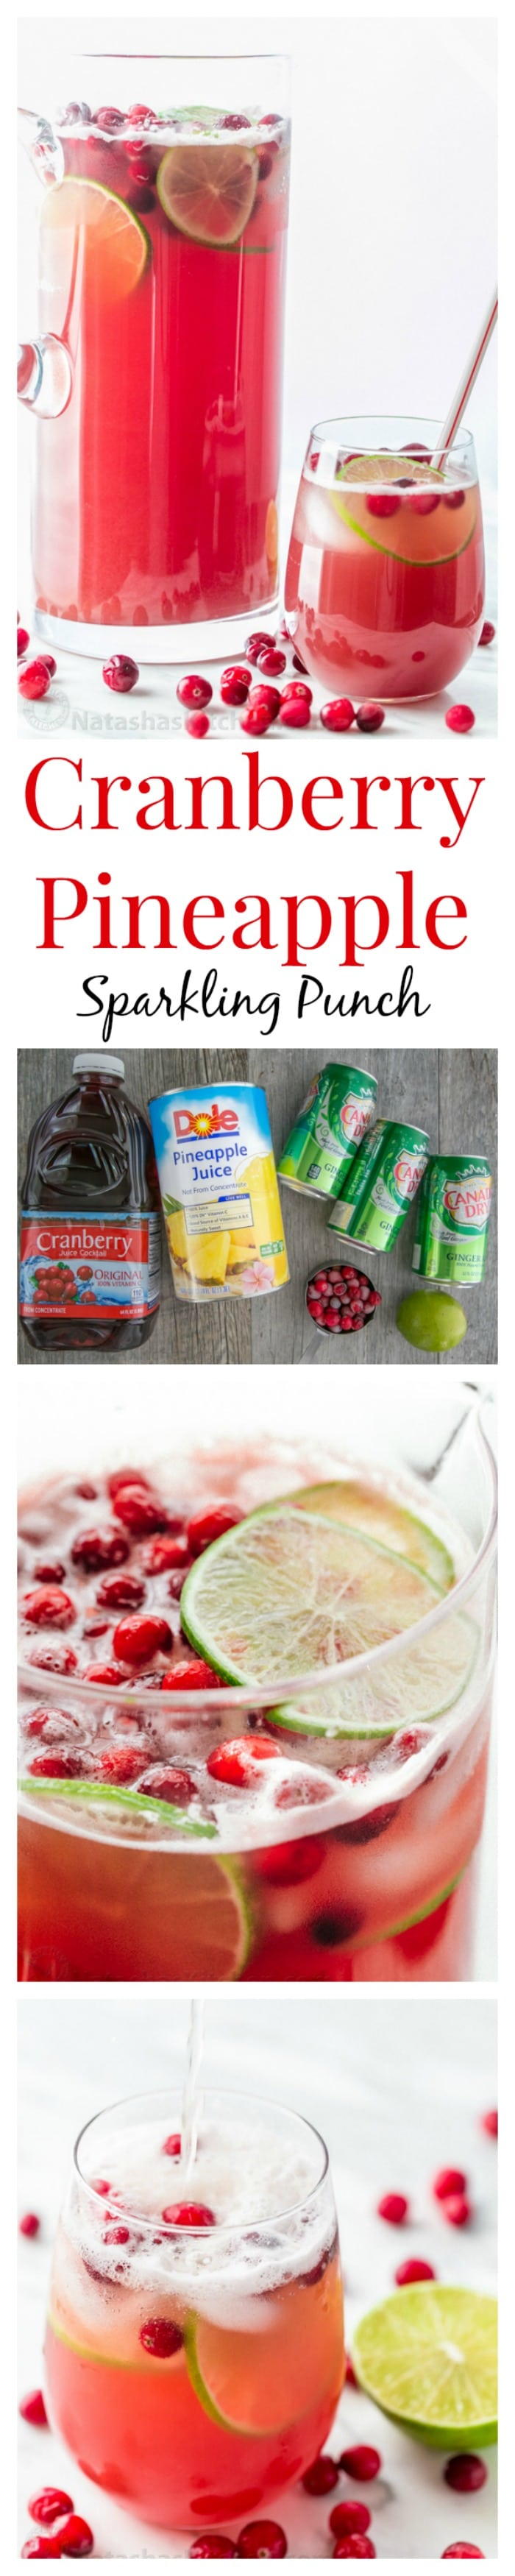 Cranberry Pineapple Punch Recipe | natashaskitchen.com #thanksgivingdrinksalcoho…